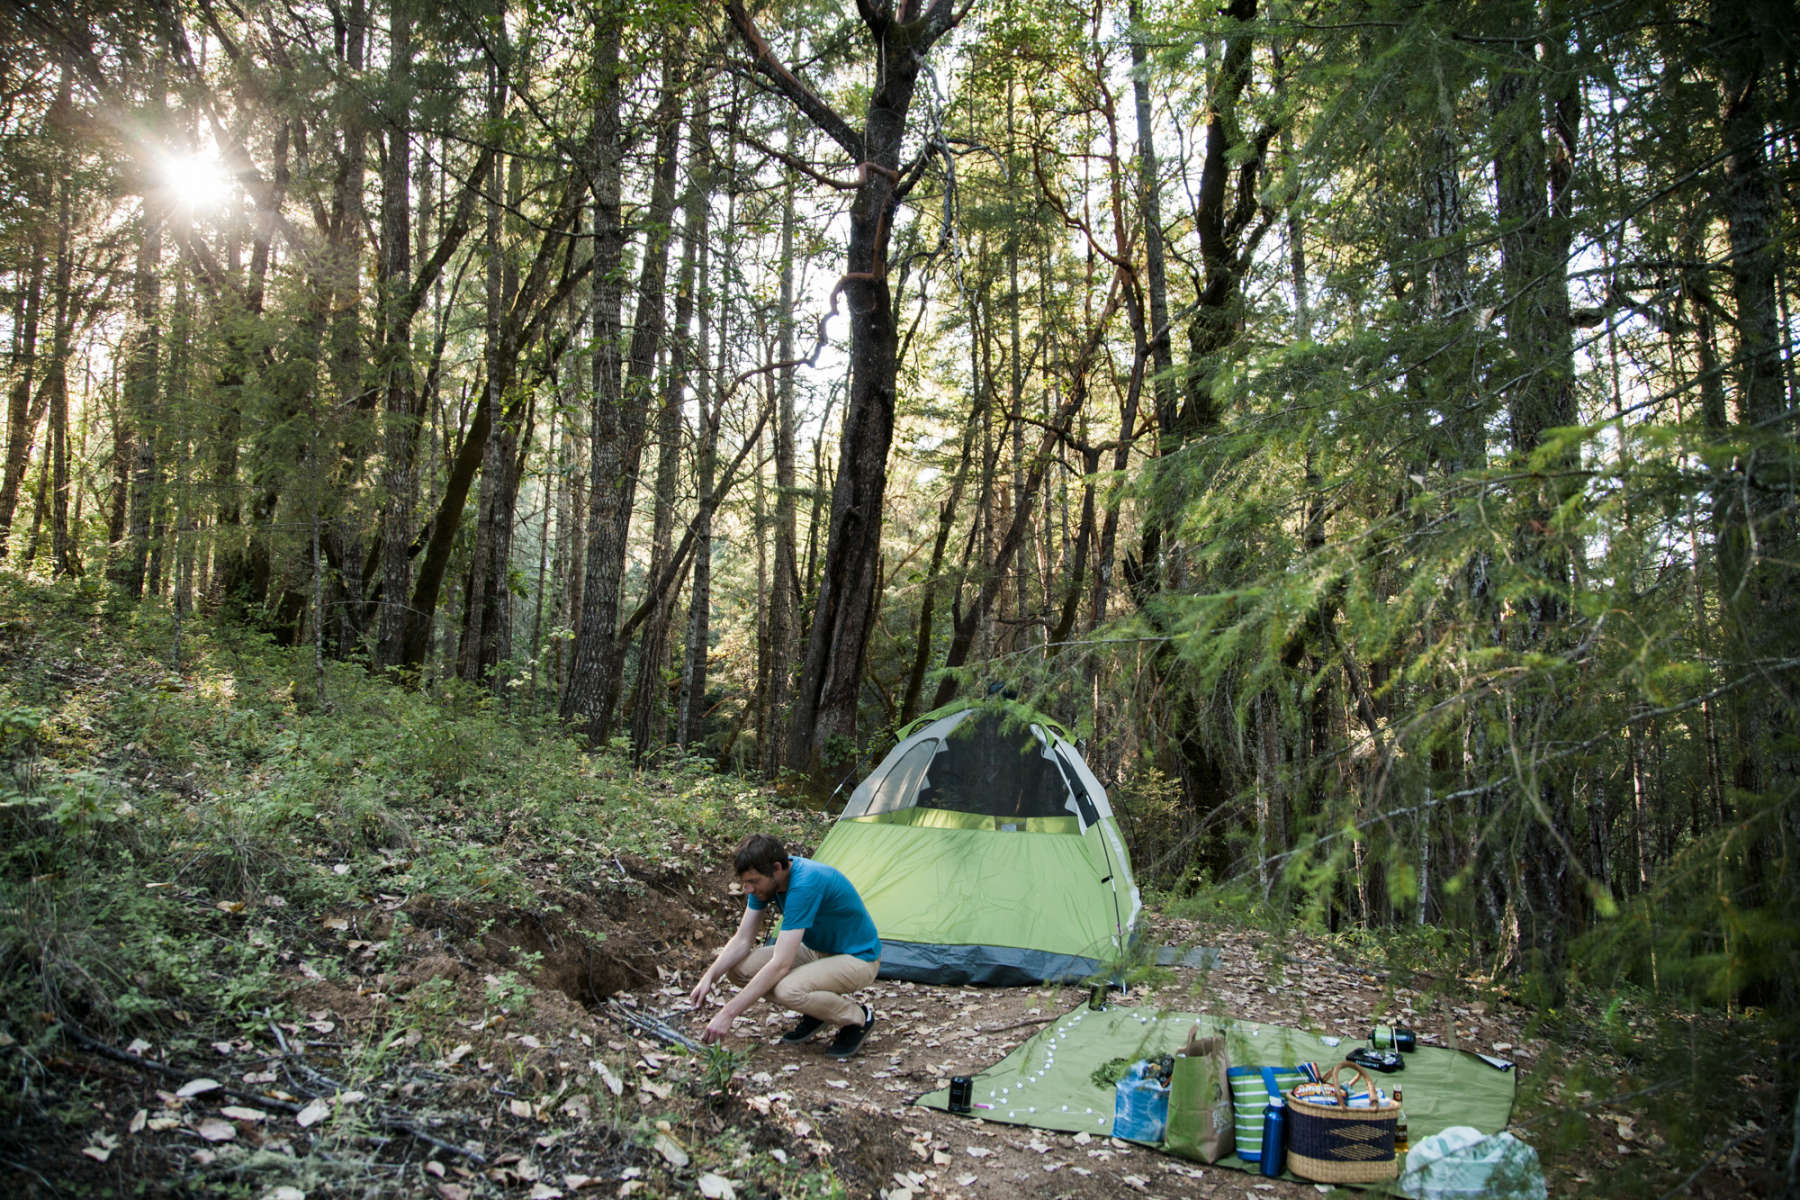 Sherwood Forest Camping >> Sherwood Forest Camp Sherwood Lake Forest Ca 49 Hipcamper Reviews